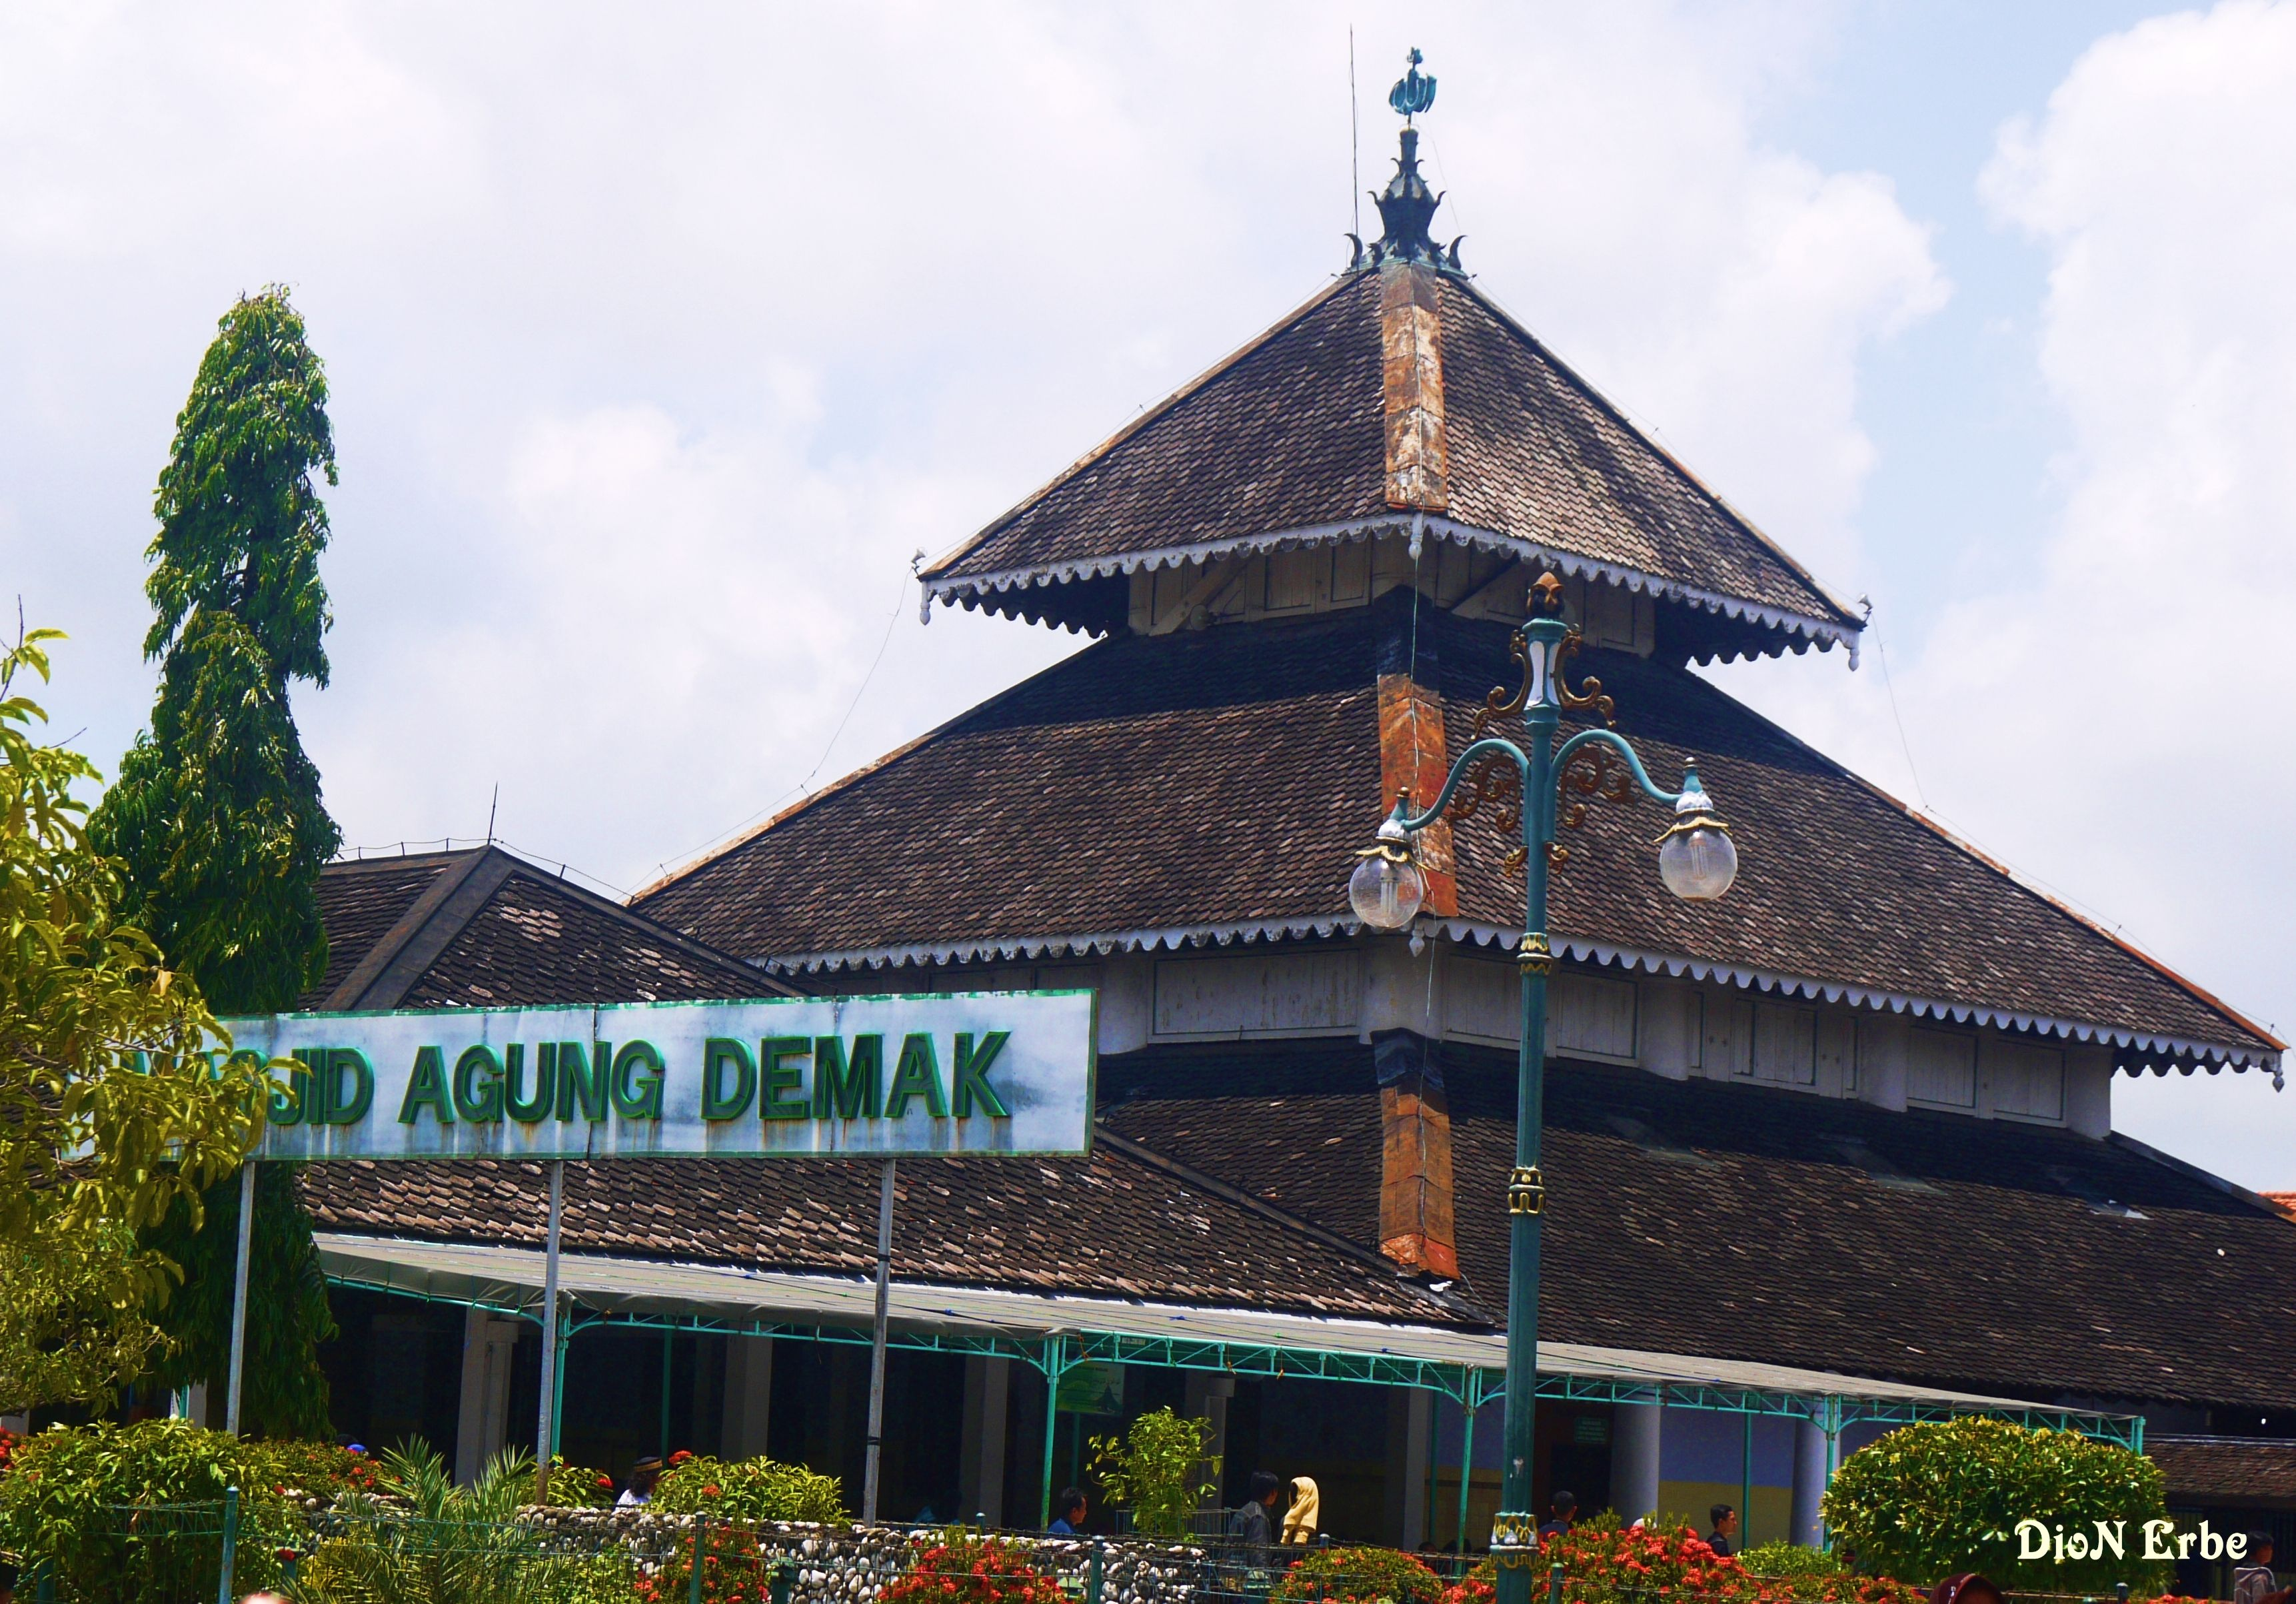 Masjid Agung Demak Is A Historical Masjid This Is The First